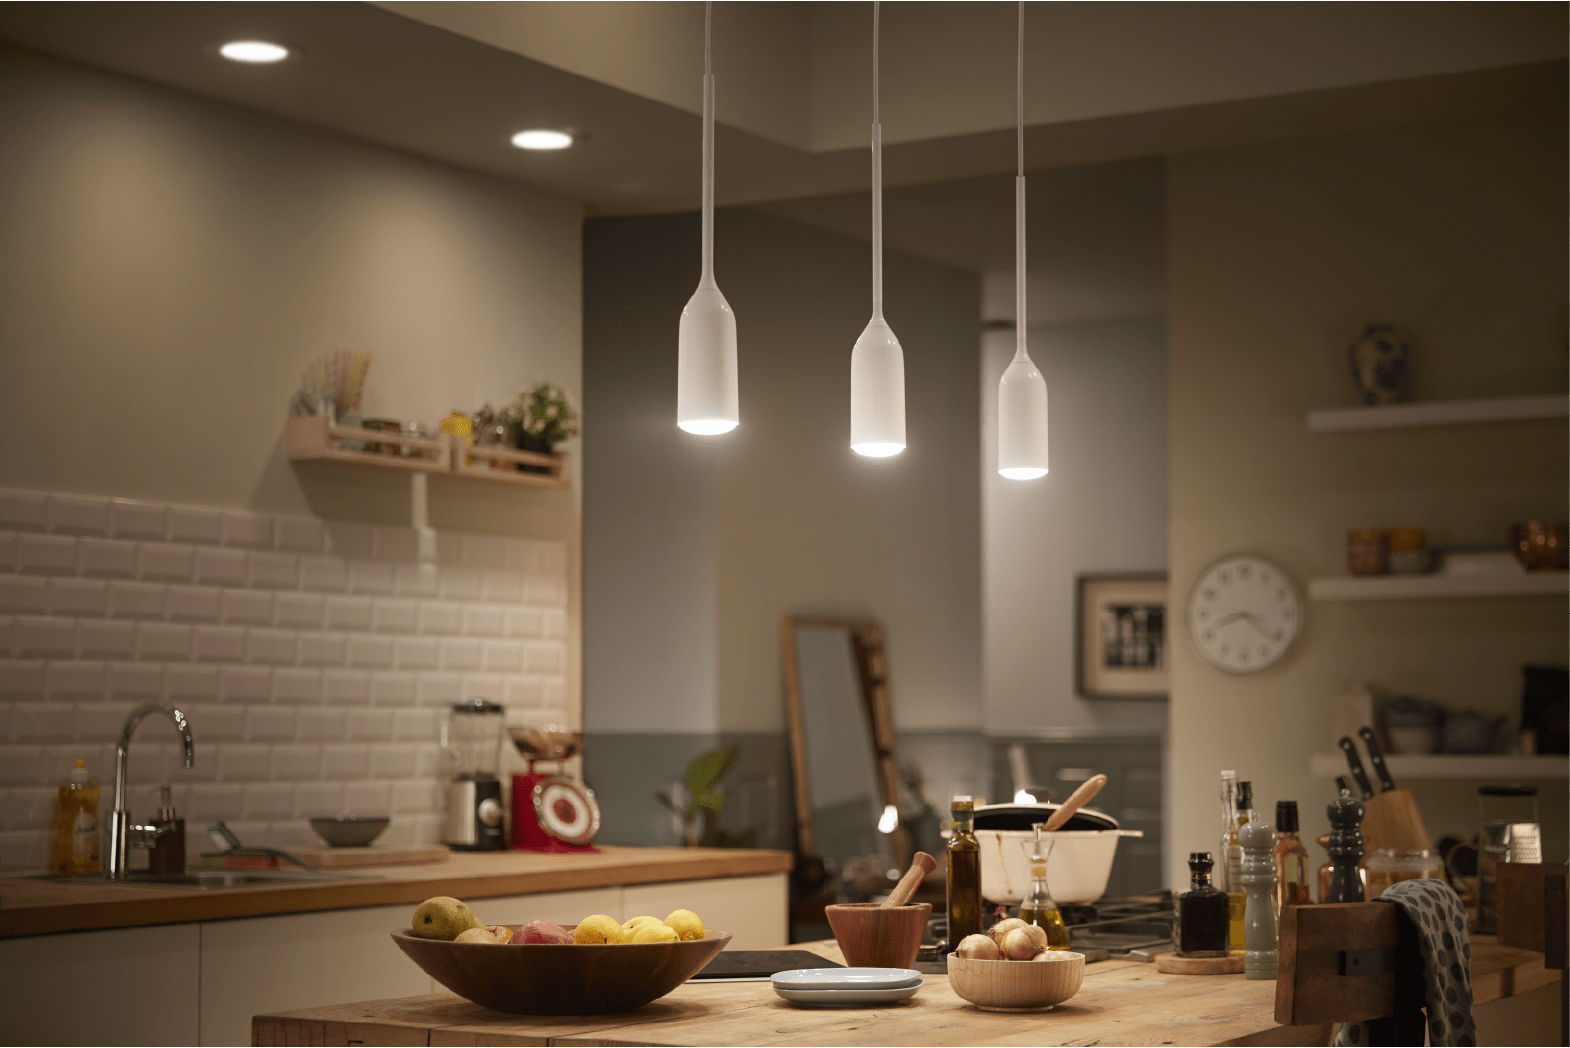 Kitchen Lighting 6 Kitchen Lighting Ideas Meethue Philips Hue